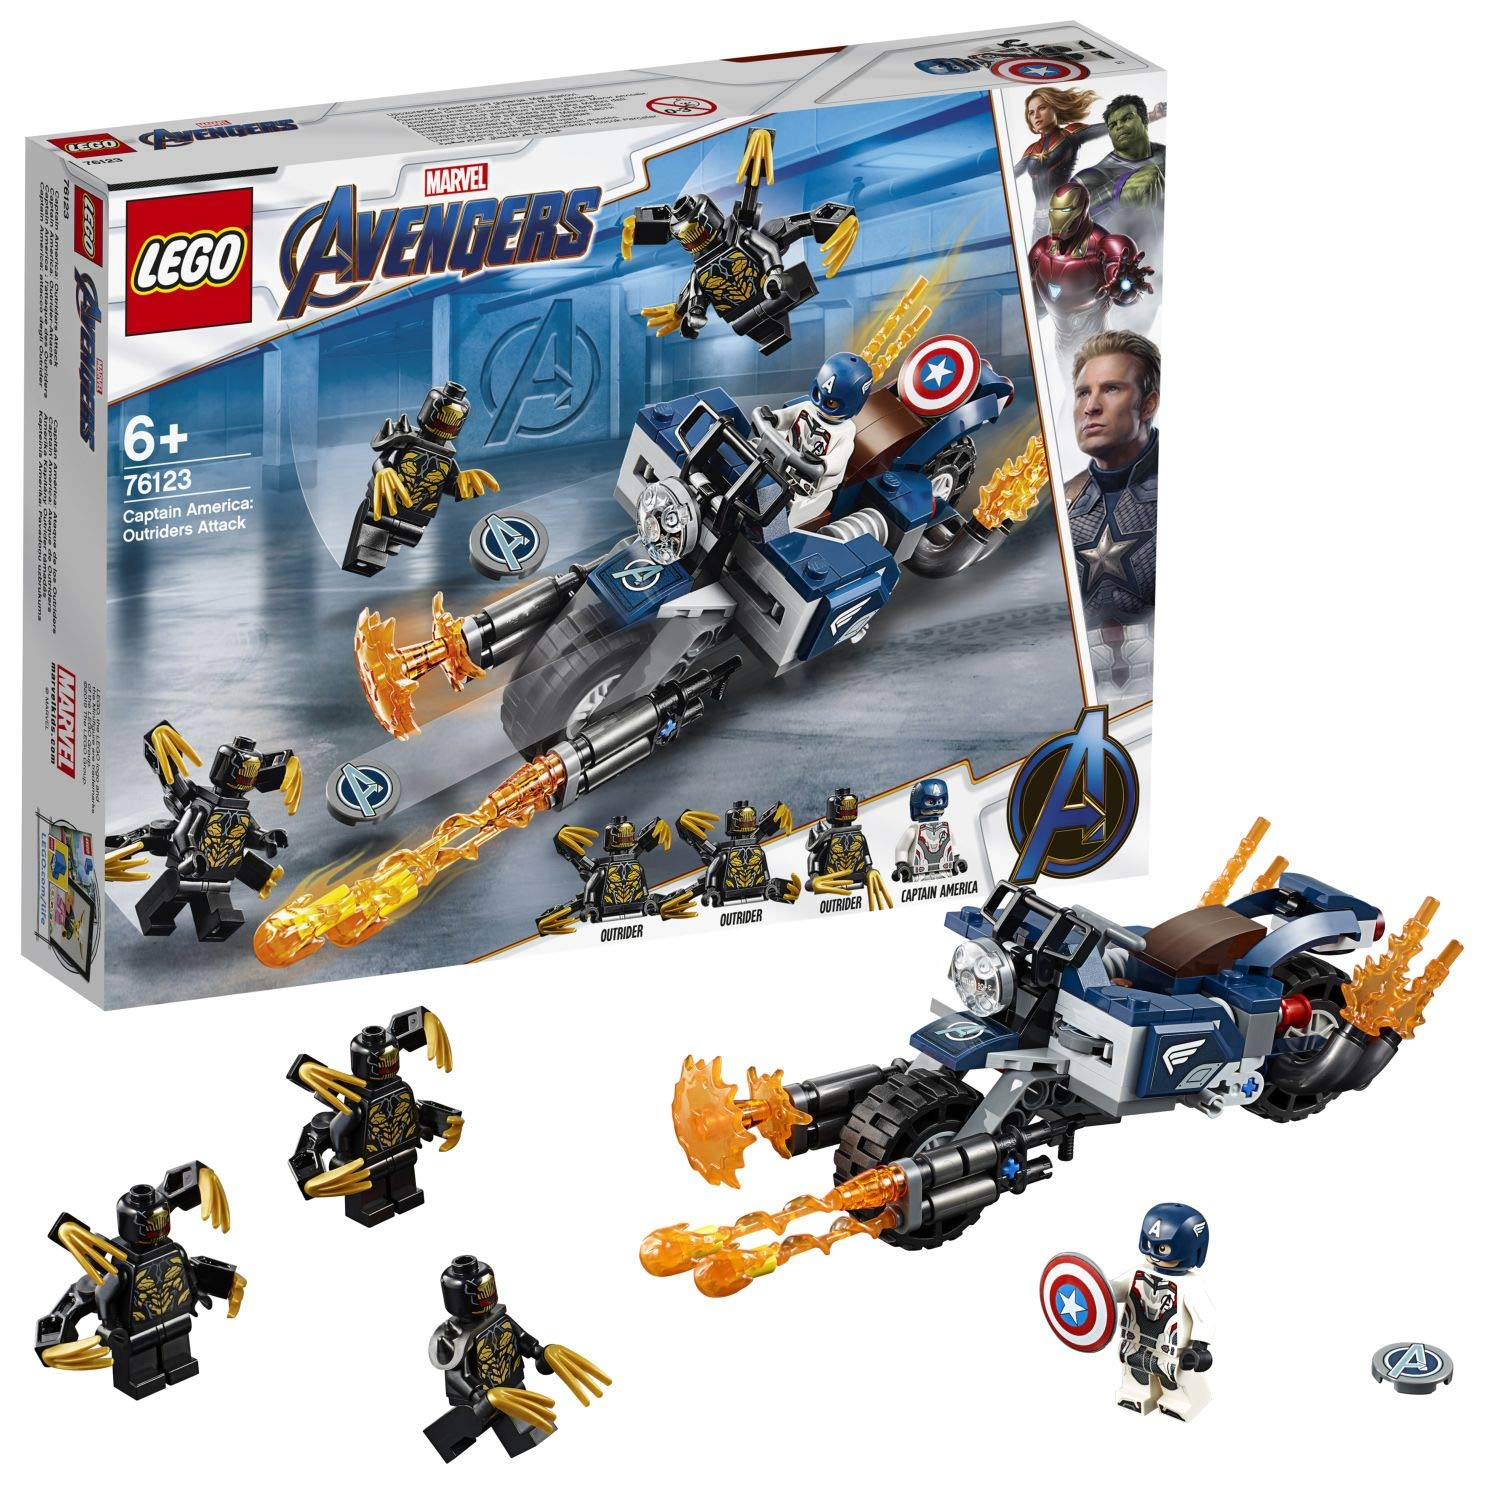 LEGO 76123 Marvel Avengers Endgame Outriders Attack Captain America's Motorcycle Toy, Super Heroes Playset